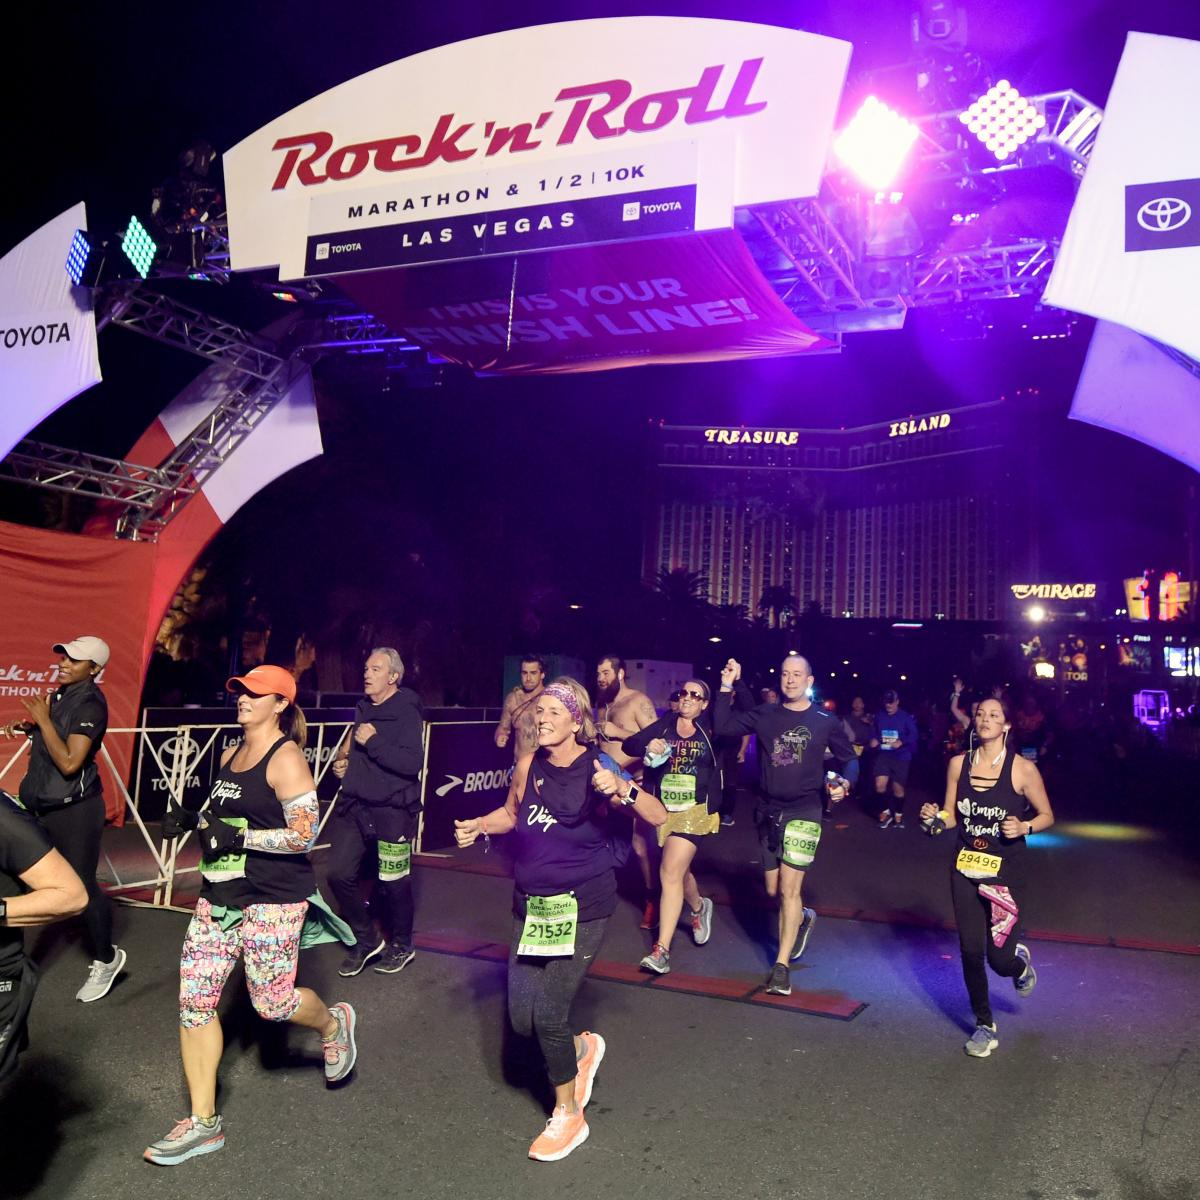 Las Vegas Marathon Results 2019: Men's and Women's Top Finishers - Bleacher Report